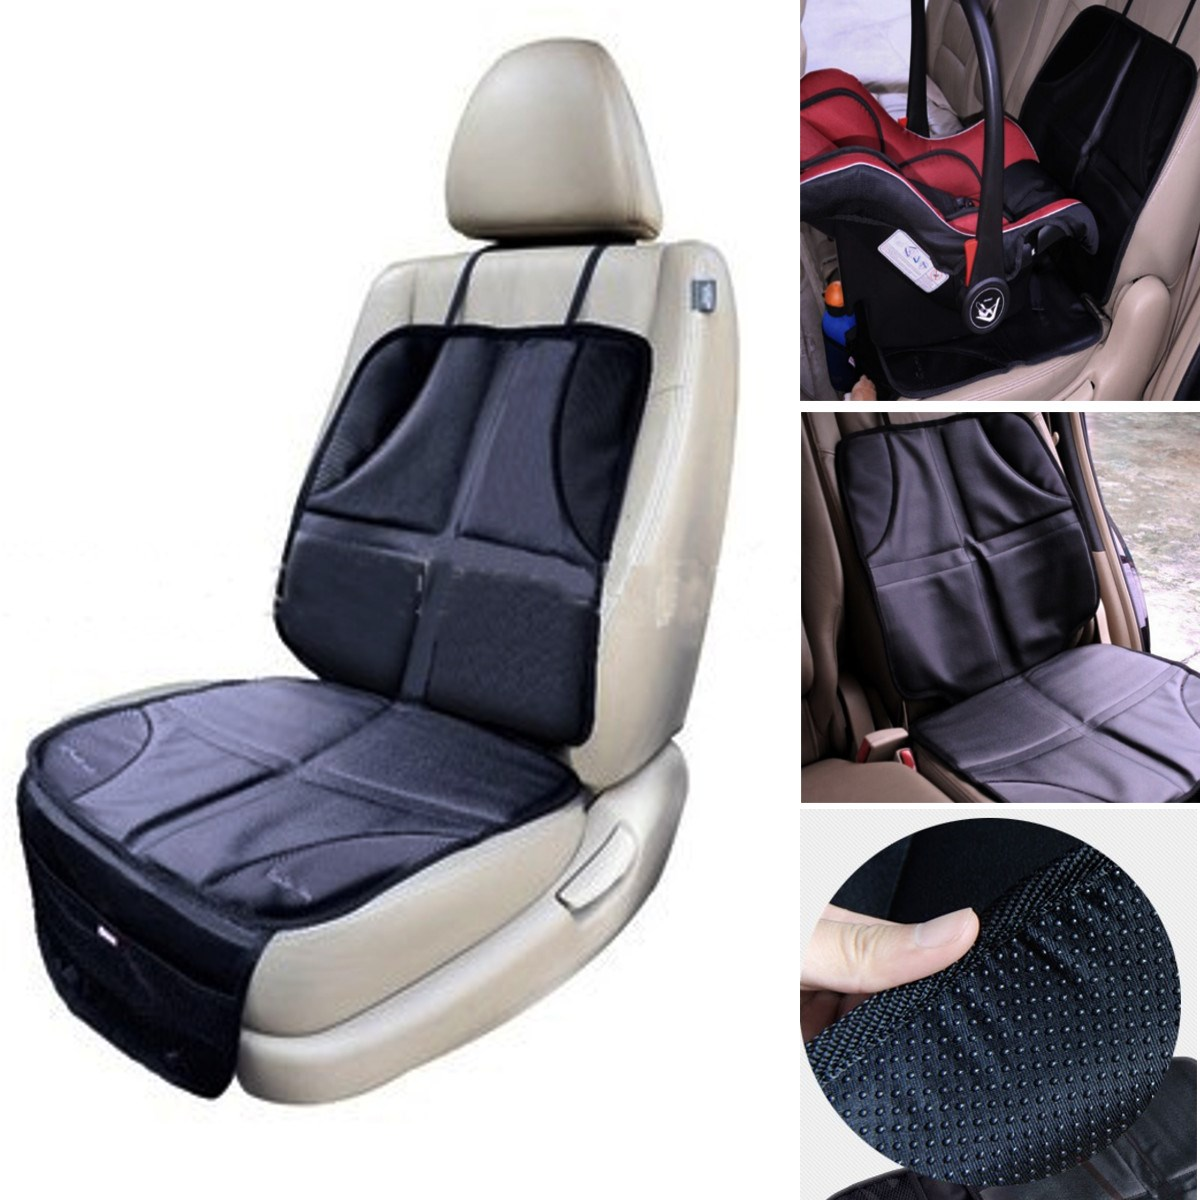 Car Auto Baby Infant Child Seat Saver Easy Clean Protector Safety Anti Slip Cushion Cover(China (Mainland))